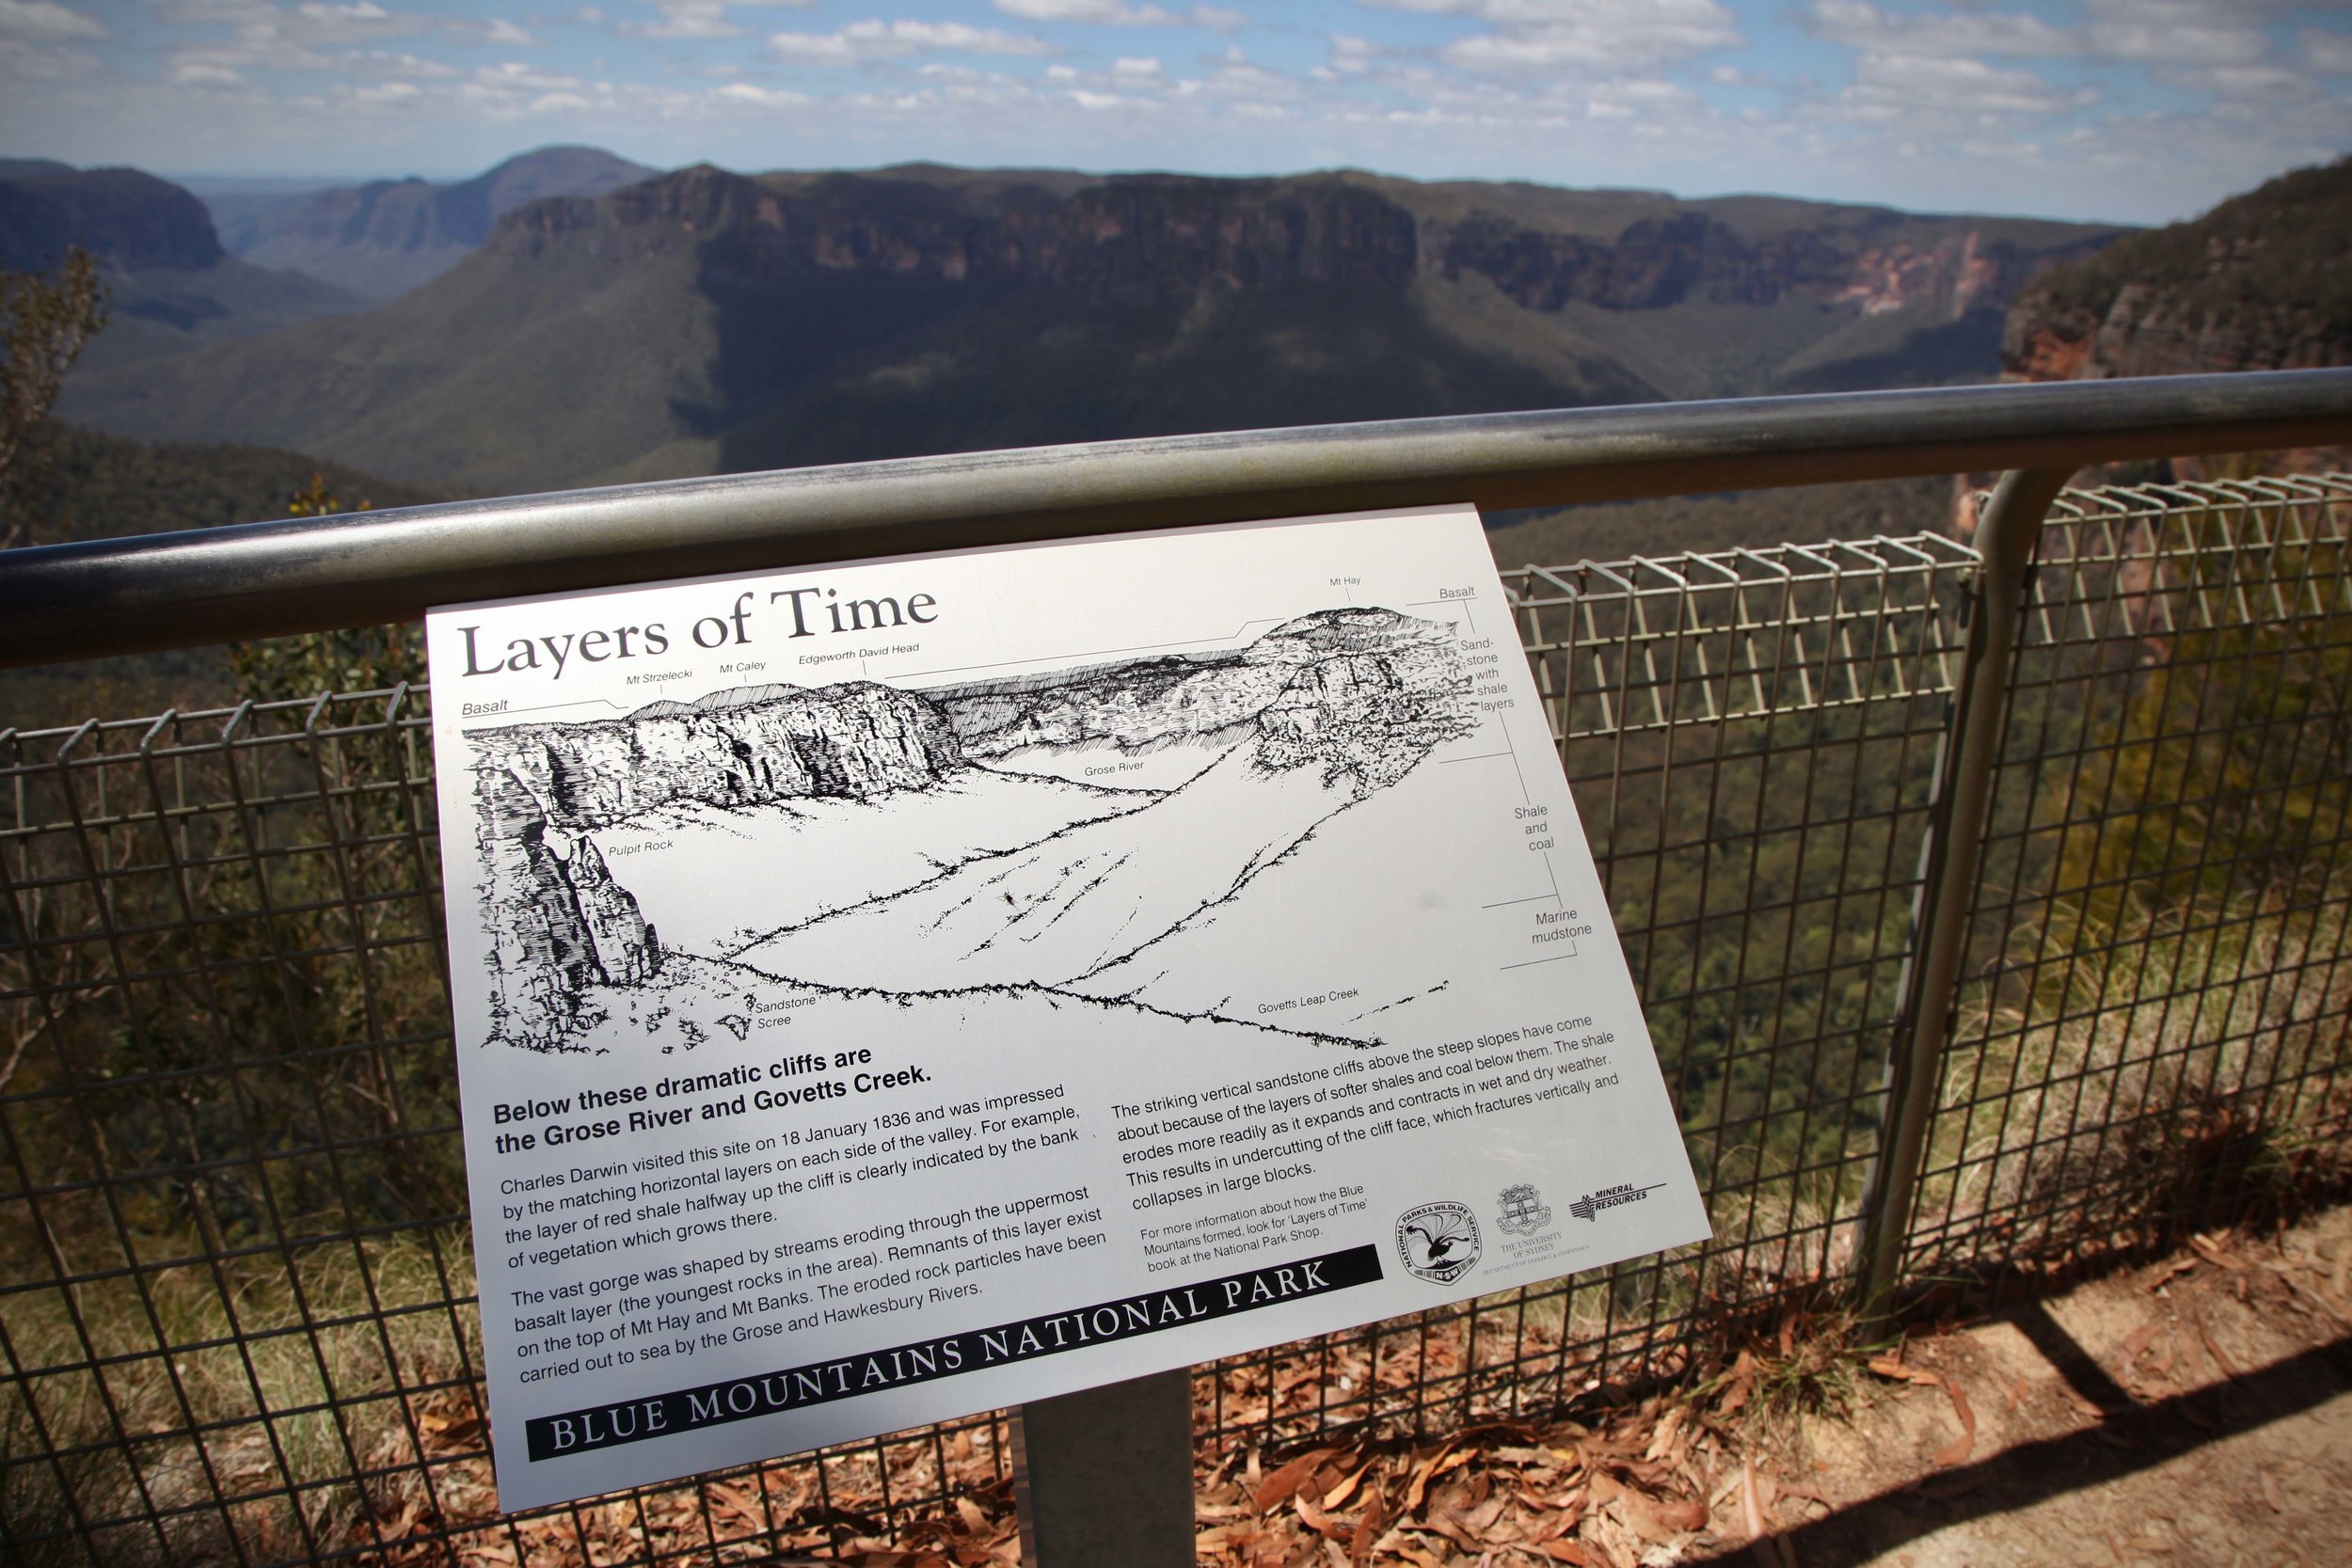 Govetts Leap overlooks the Grose Valley in the Blue Mountains National Park. This is where I started my hike (well, after walking from Blackheath train station to this point. From Govetts Leap you can take the Cliff Top track to Evan's Lookout.